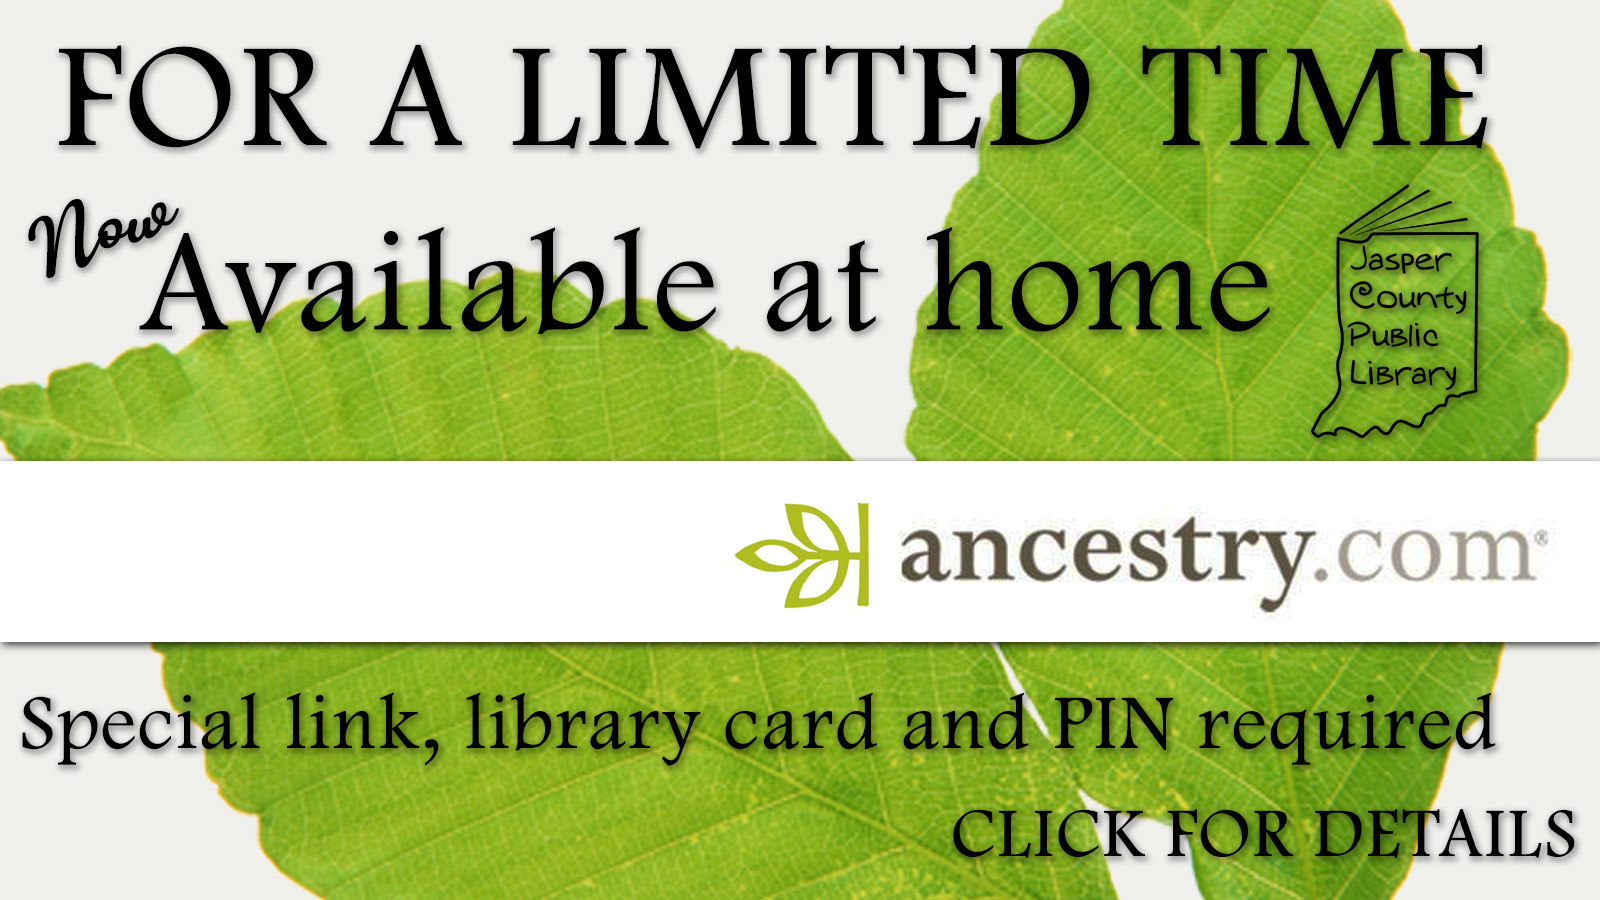 For a limited time, special link, library card and PIN required.